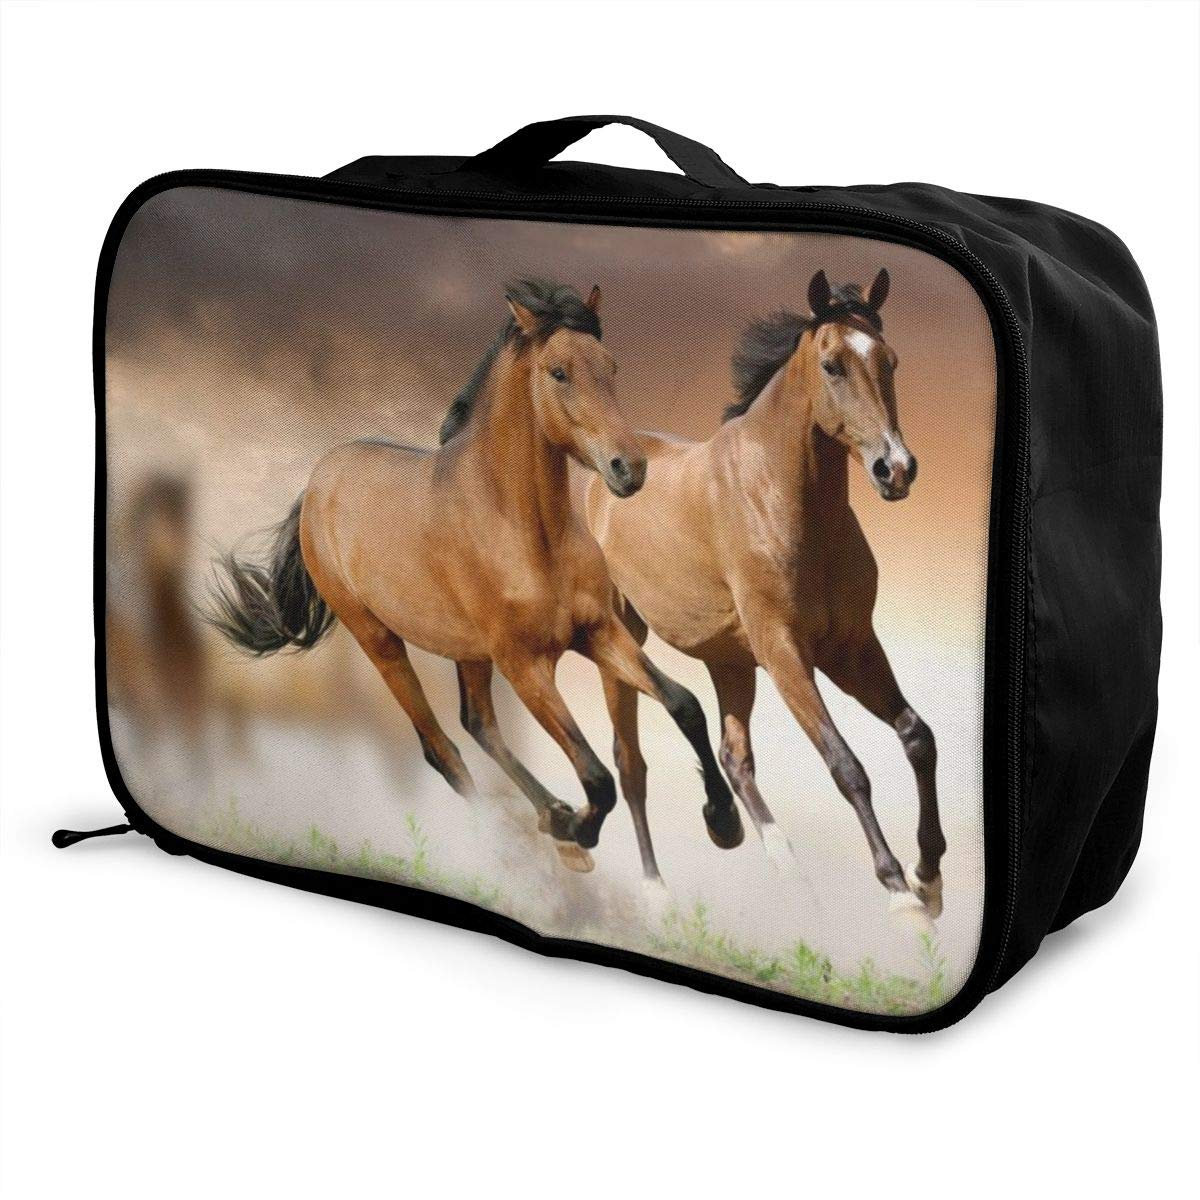 Horses Running Customize Casual Portable Travel Bag Suitcase Storage Bag Luggage Packing Tote Bag Trolley Bag